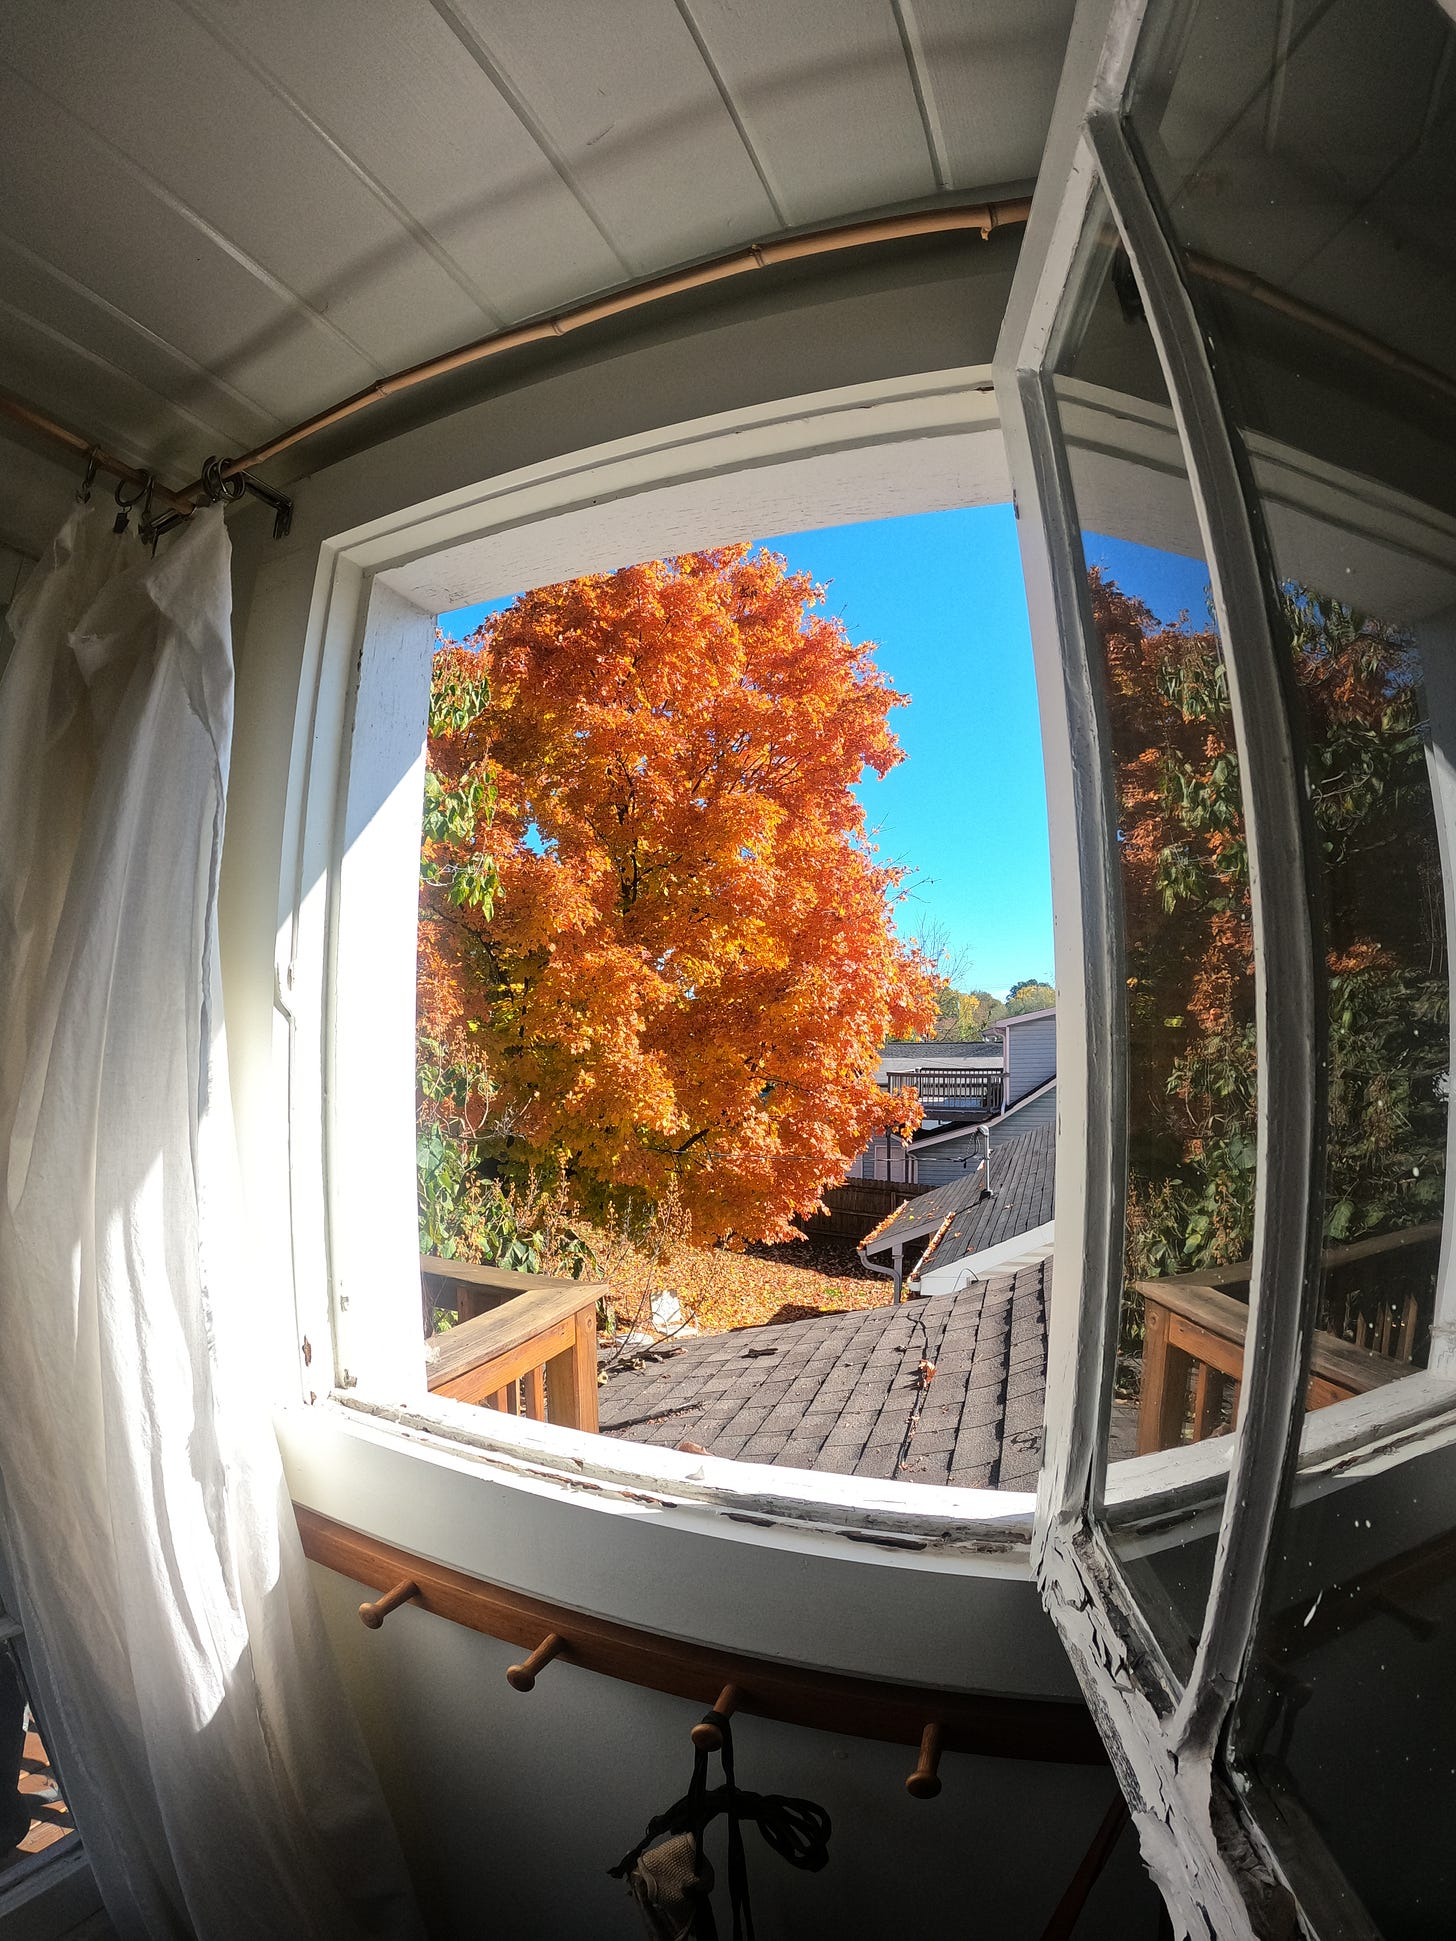 Amazing orange fall tree outside out Airbnb window